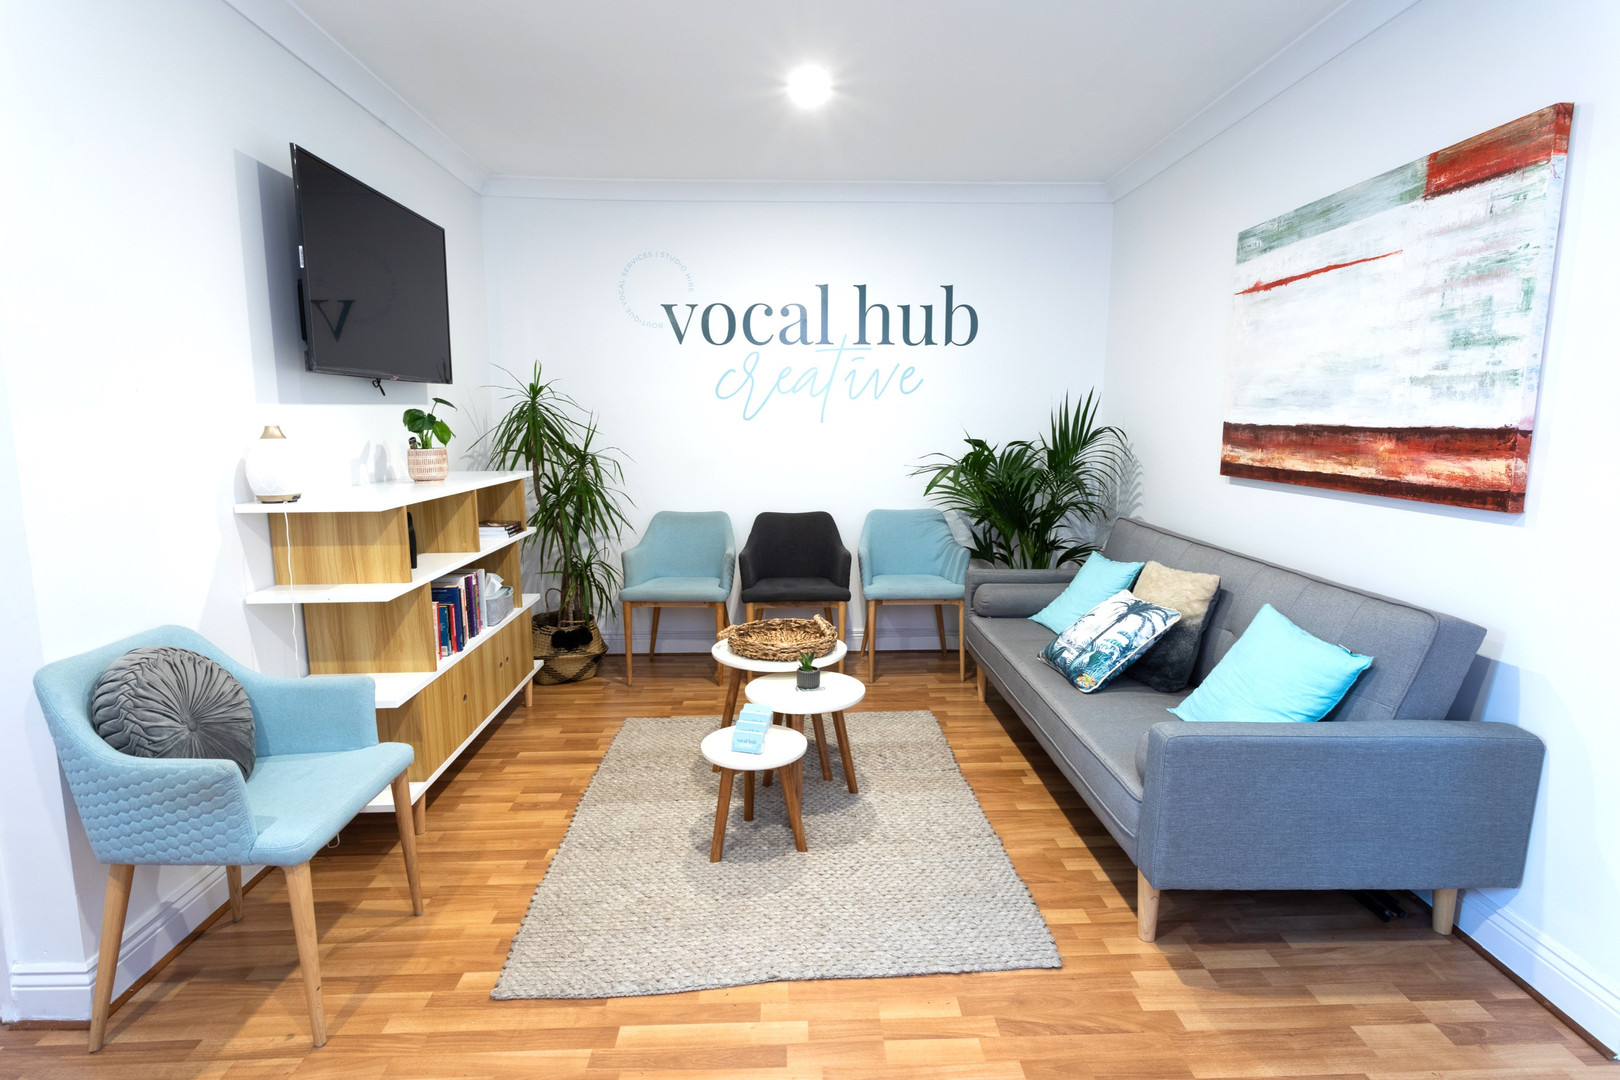 Vocal Hub Creative